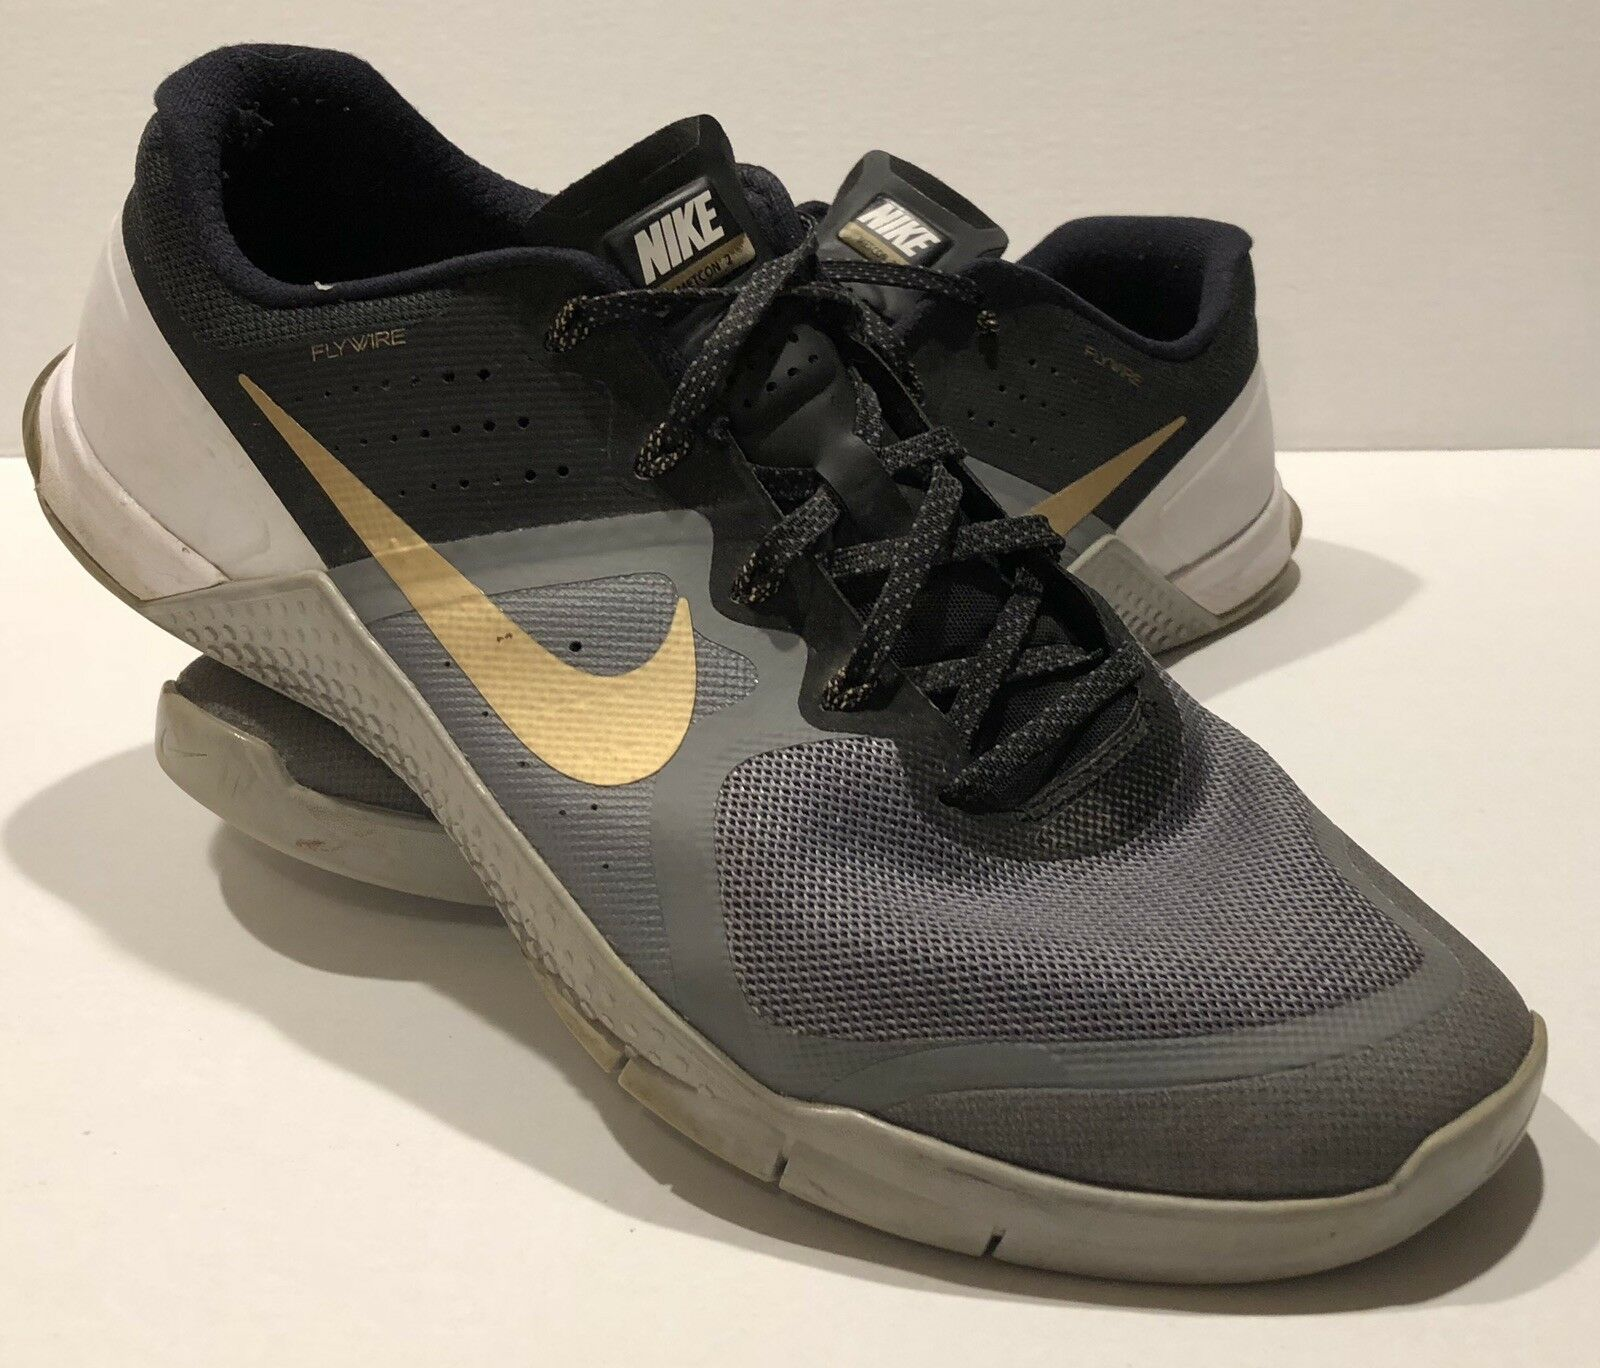 Nike Metcon 2 Flywire  Black And gold-Size 13